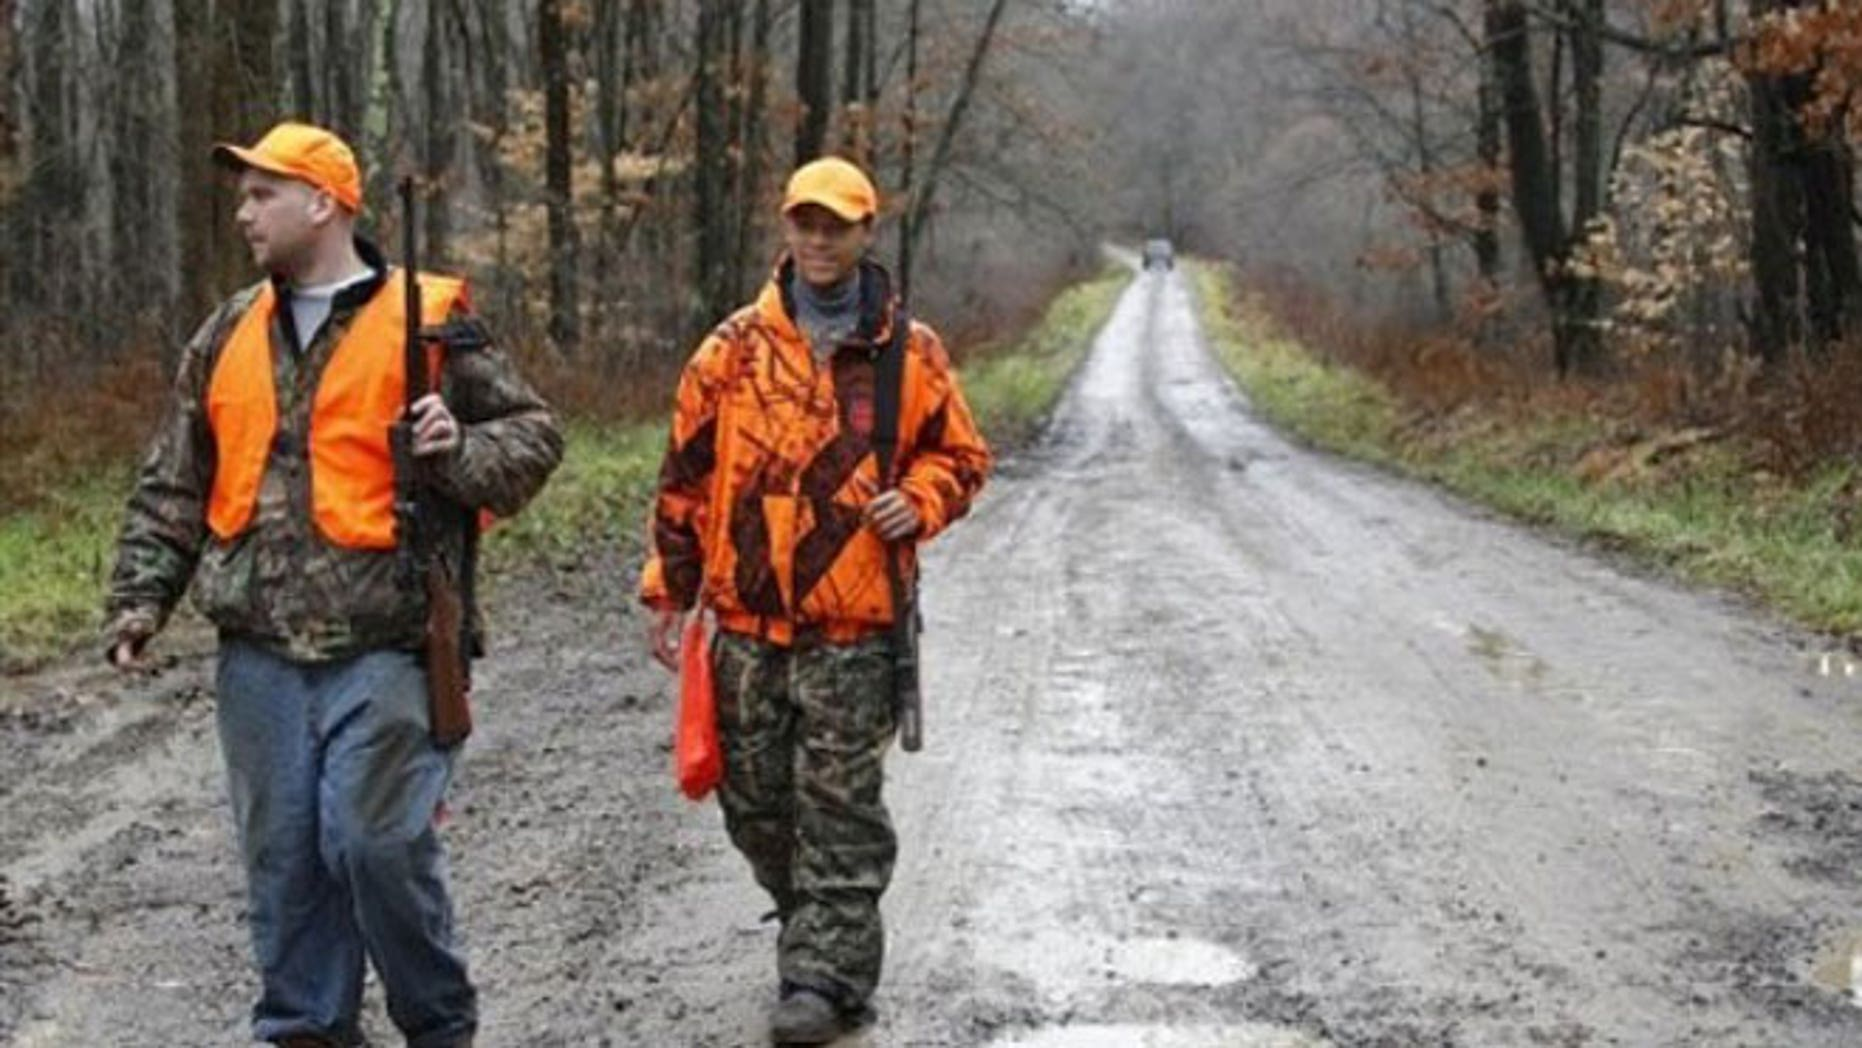 November 28, 2011: Deer hunters hike down a gravel road in Moraine State Park on the first day of Pennsylvania's white-tailed deer rifle hunting season in West Liberty, Pa.